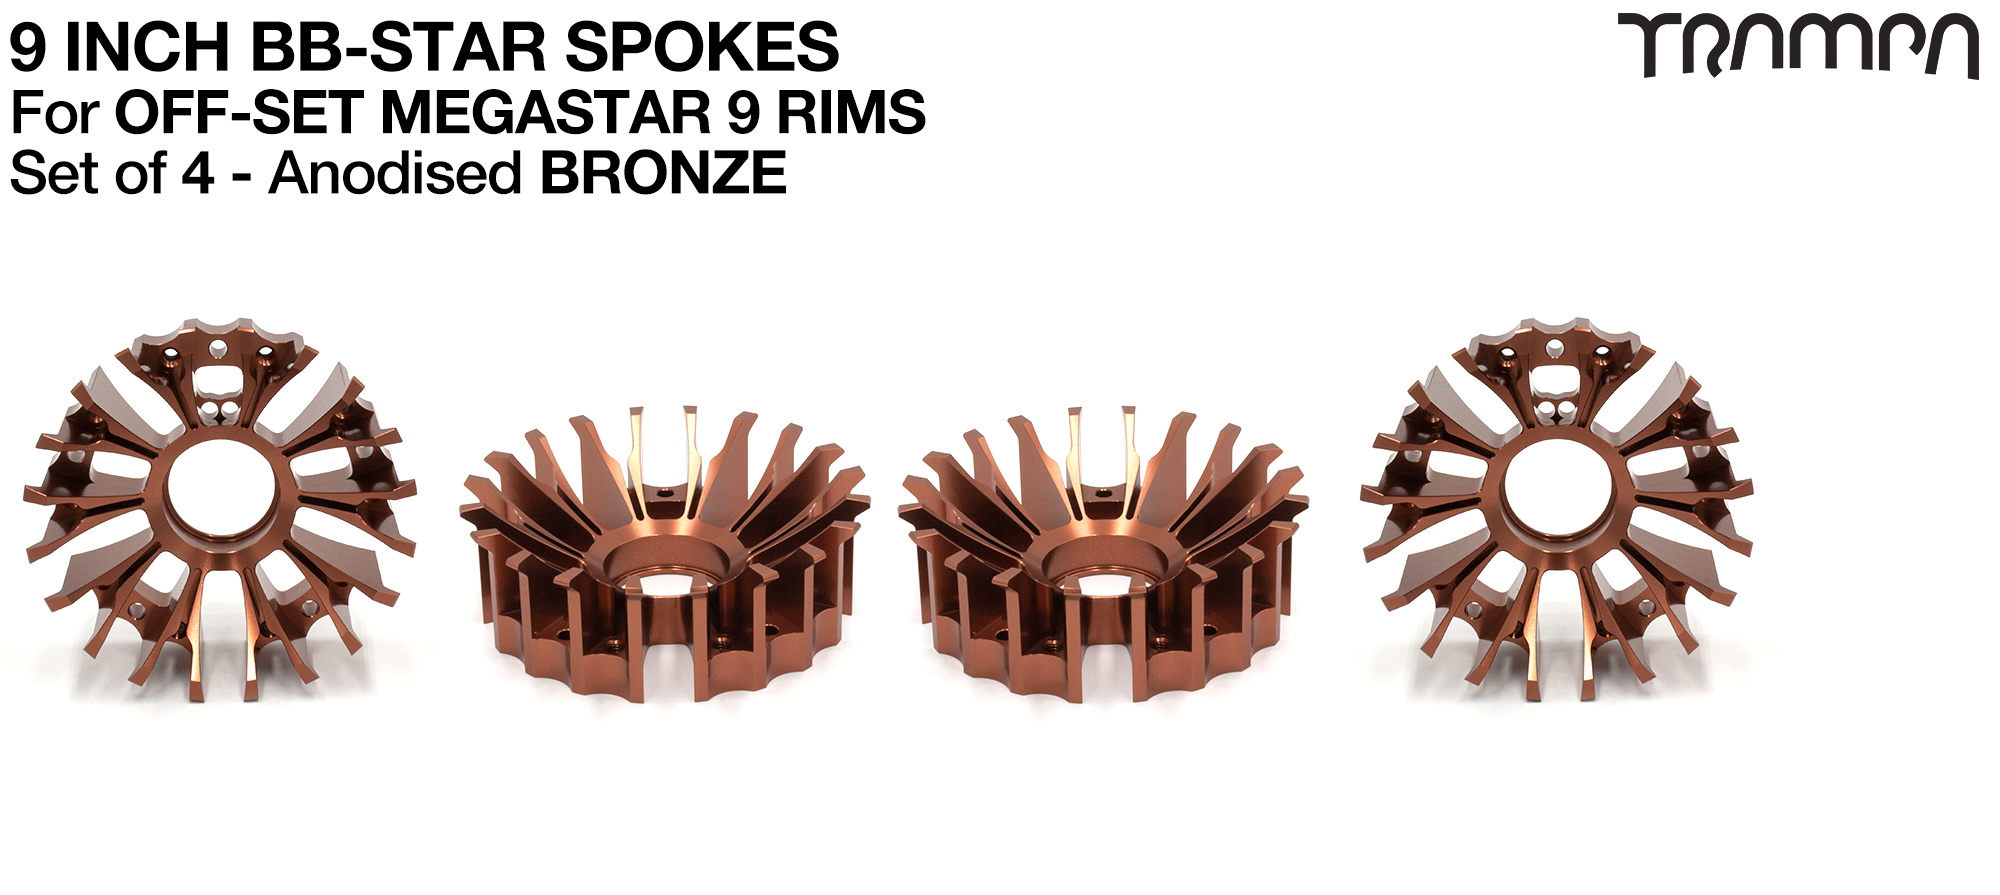 BBStar Spoke for SUPERSTAR or any size MEGASTAR rims - Extruded T6 Aluminium Heat treated & CNC Precision milled - BRONZE